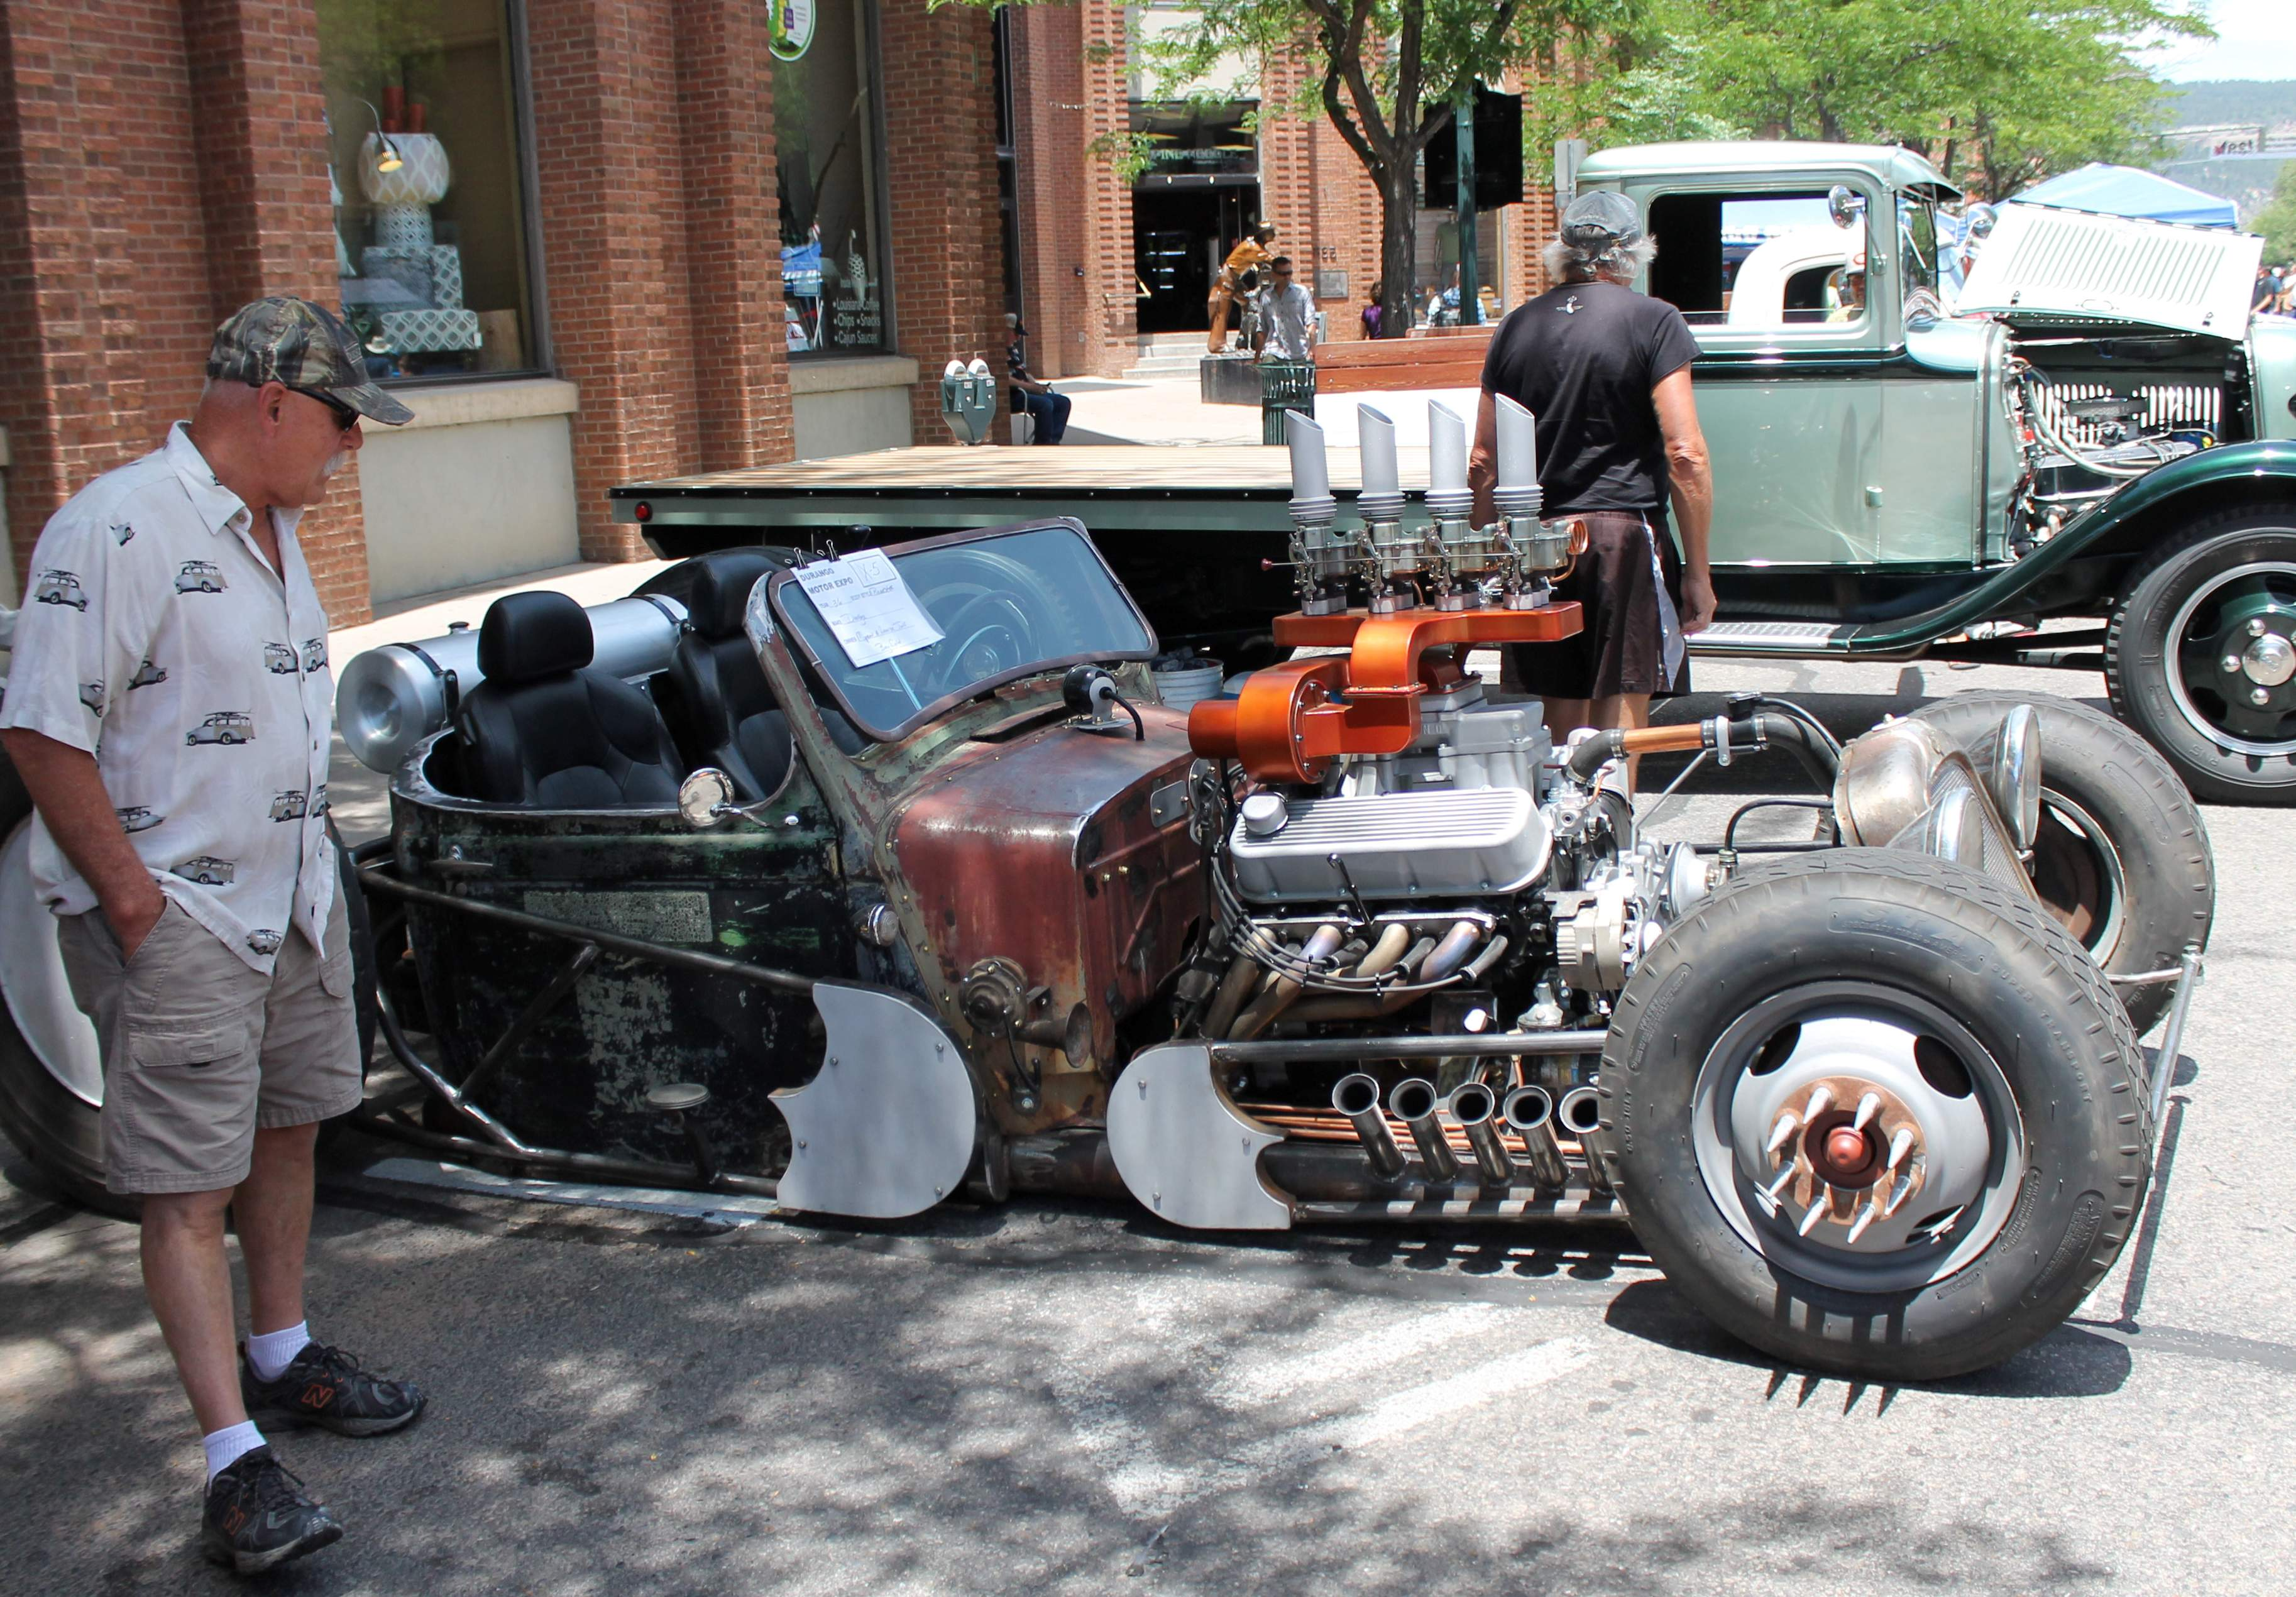 Hot rods for a hot day